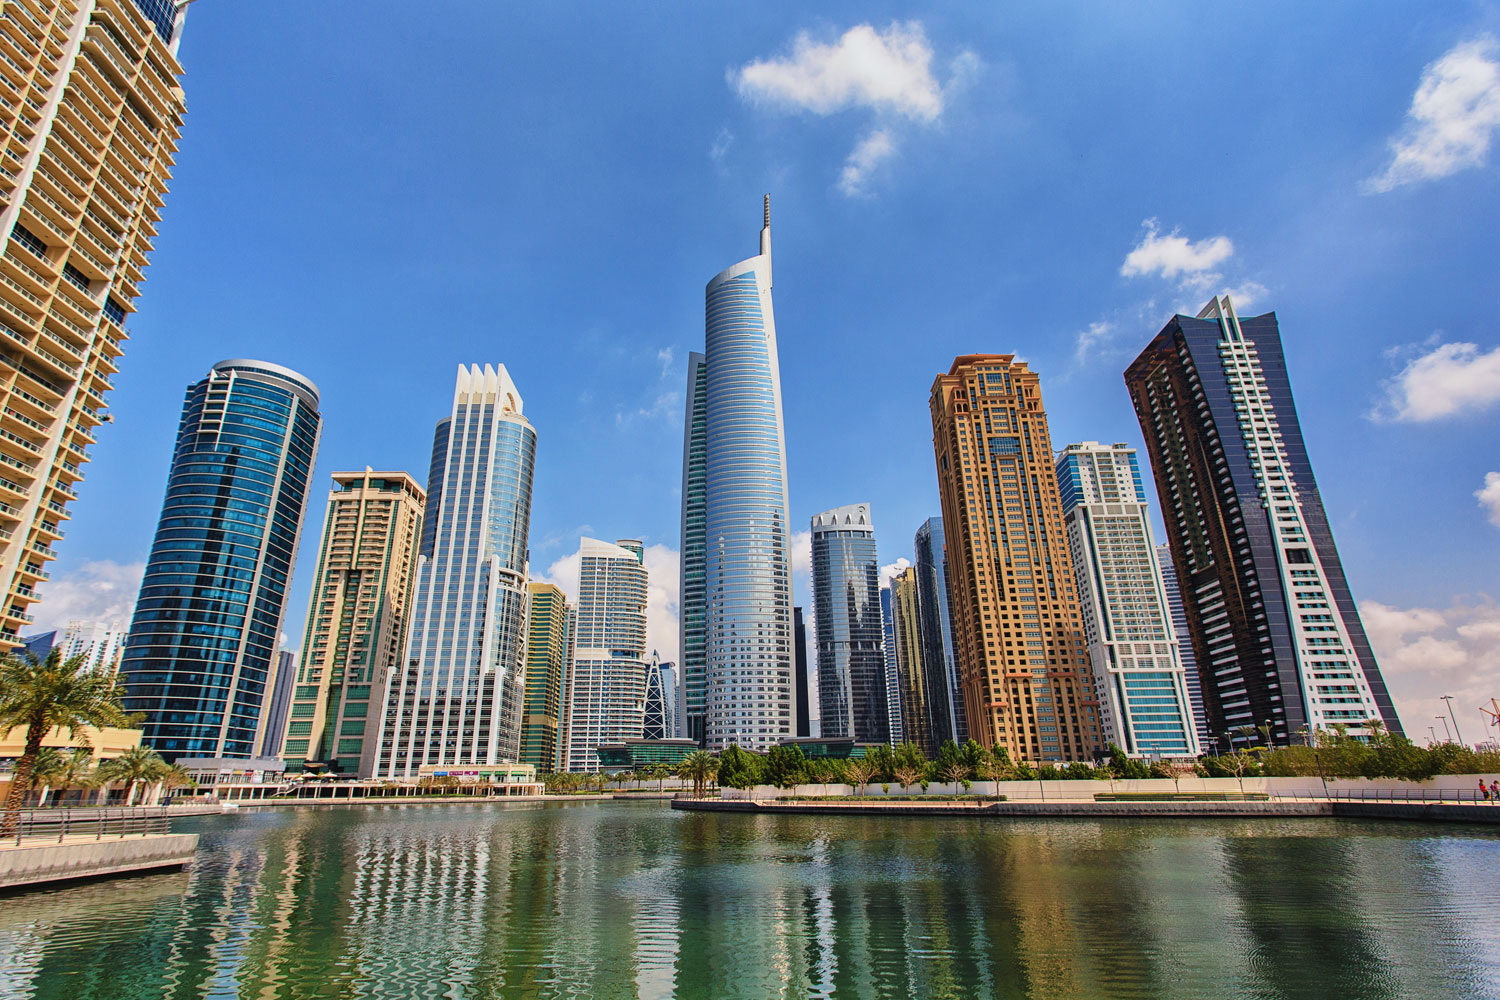 The essential guide to JLT | Things To Do | Time Out Dubai